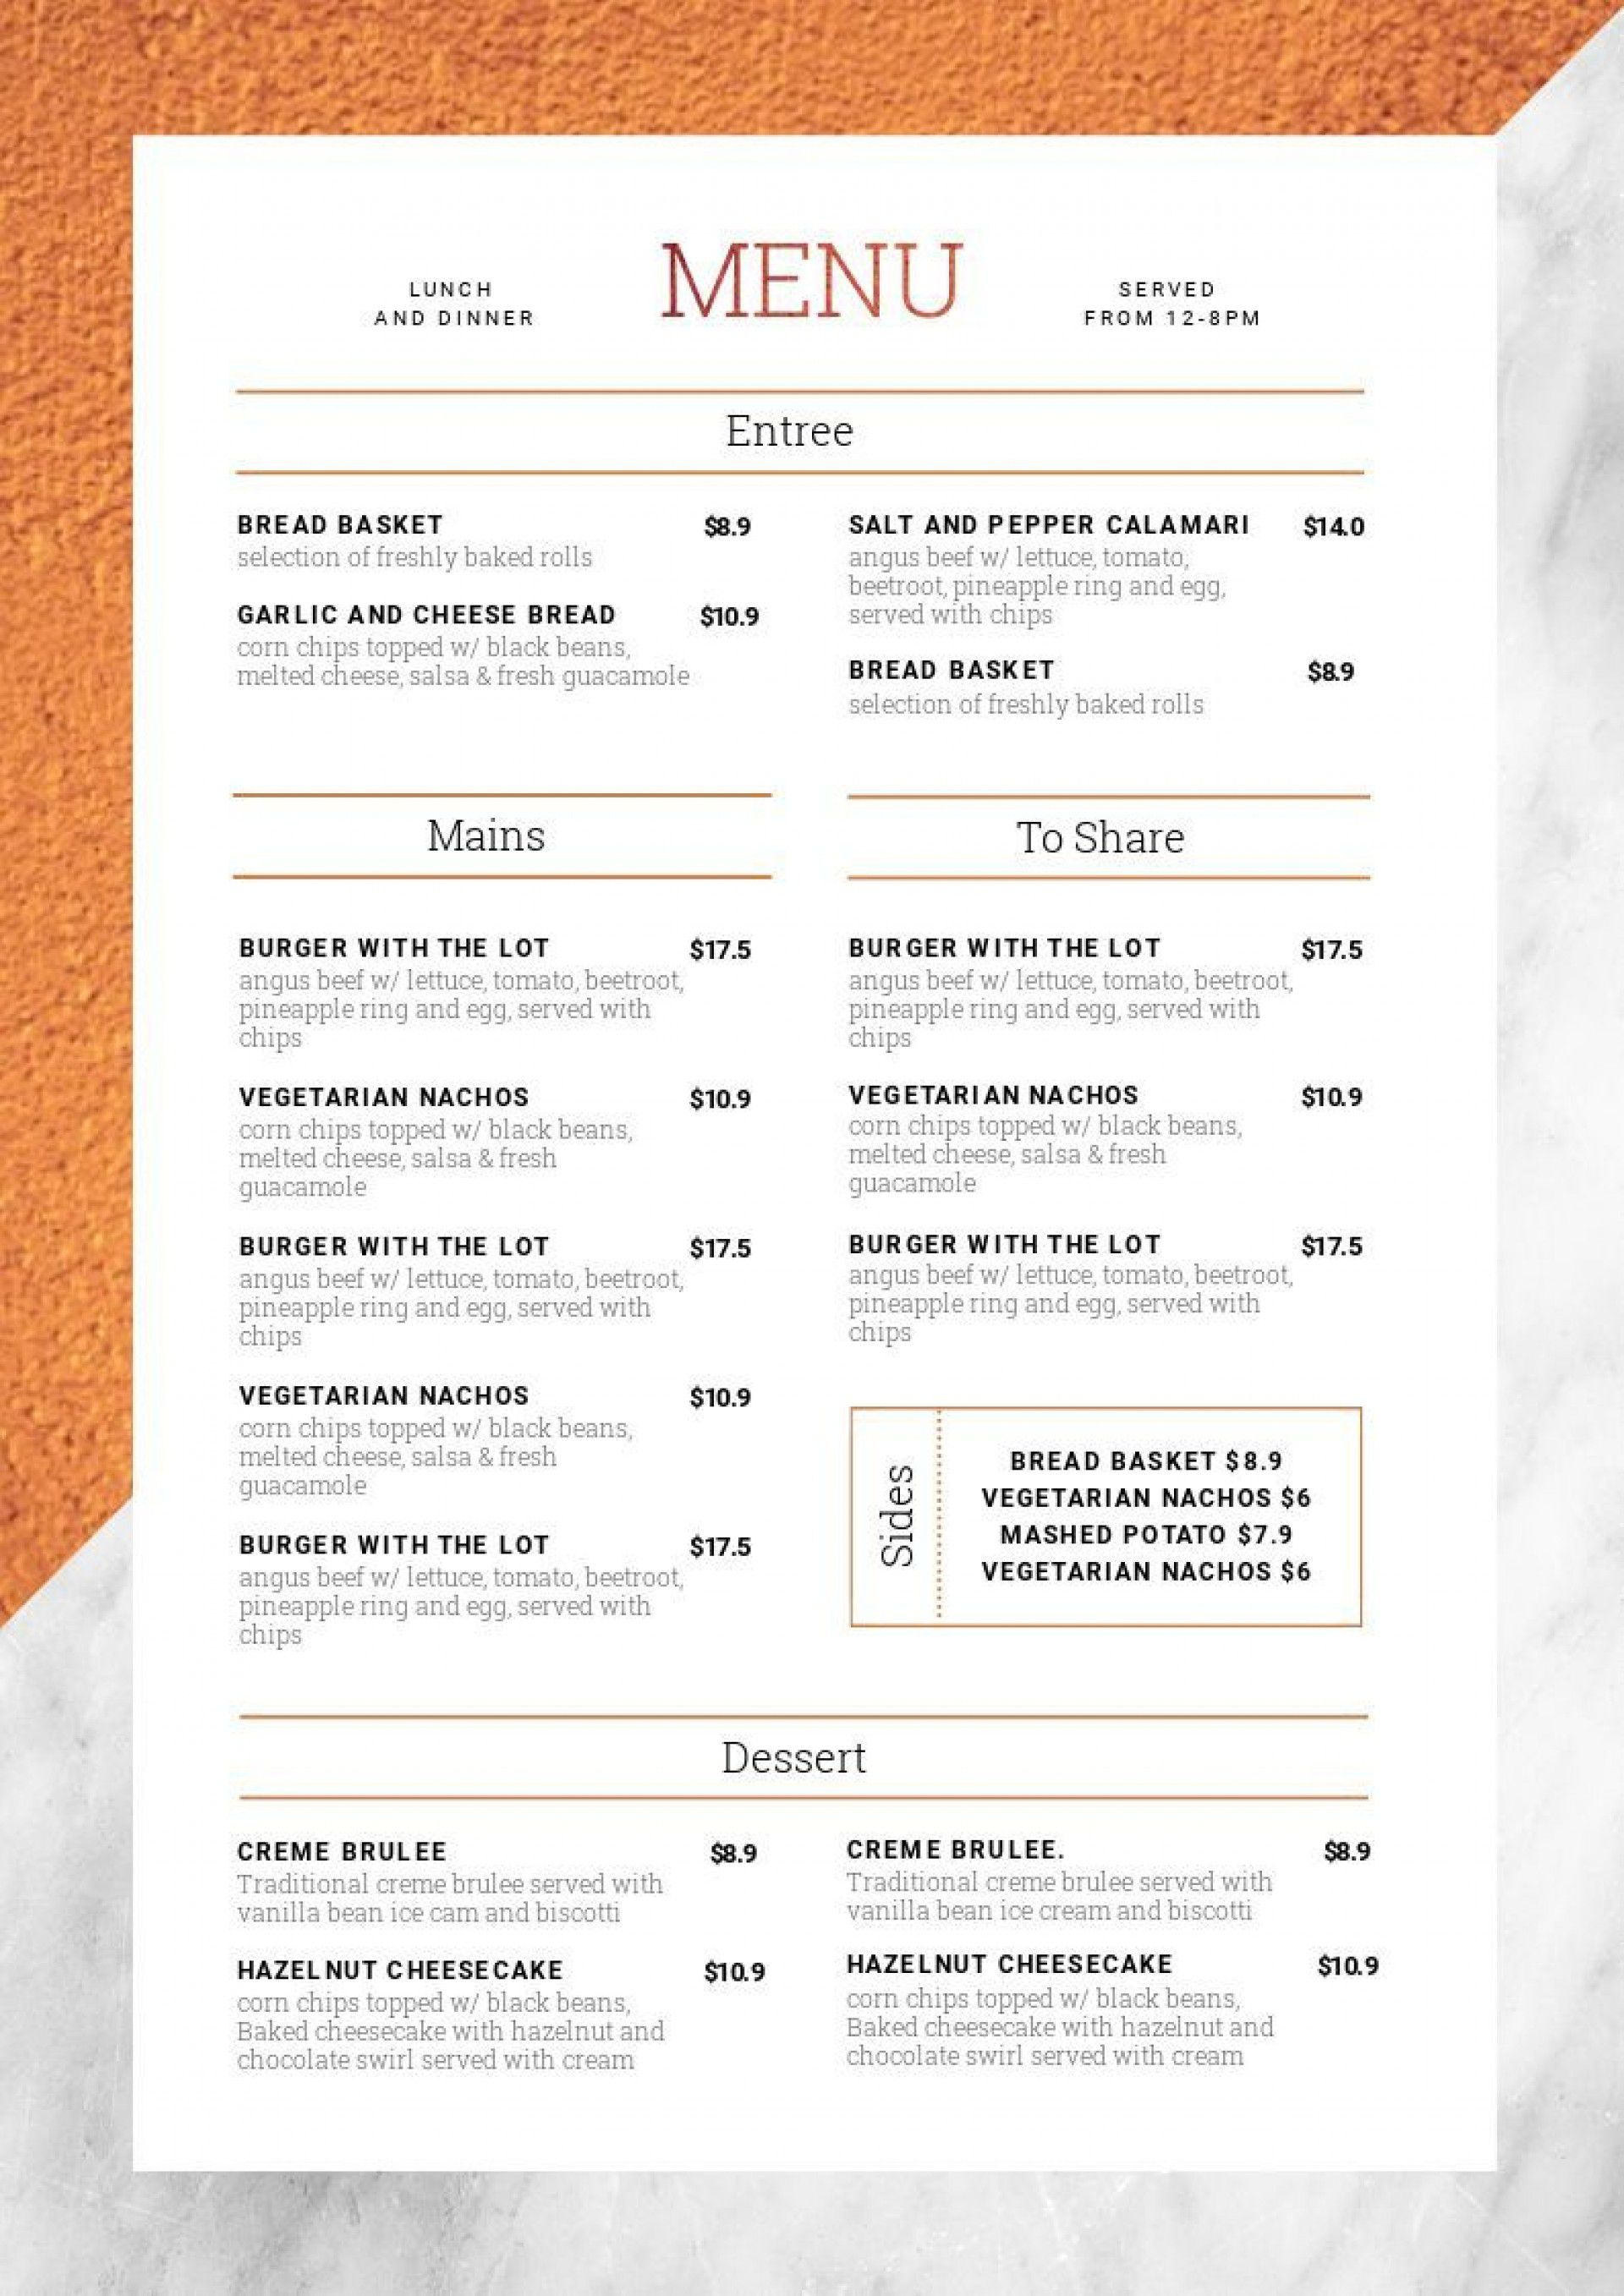 007 Fascinating Menu Template Free Download Word Concept  Dinner Party WeddingFull